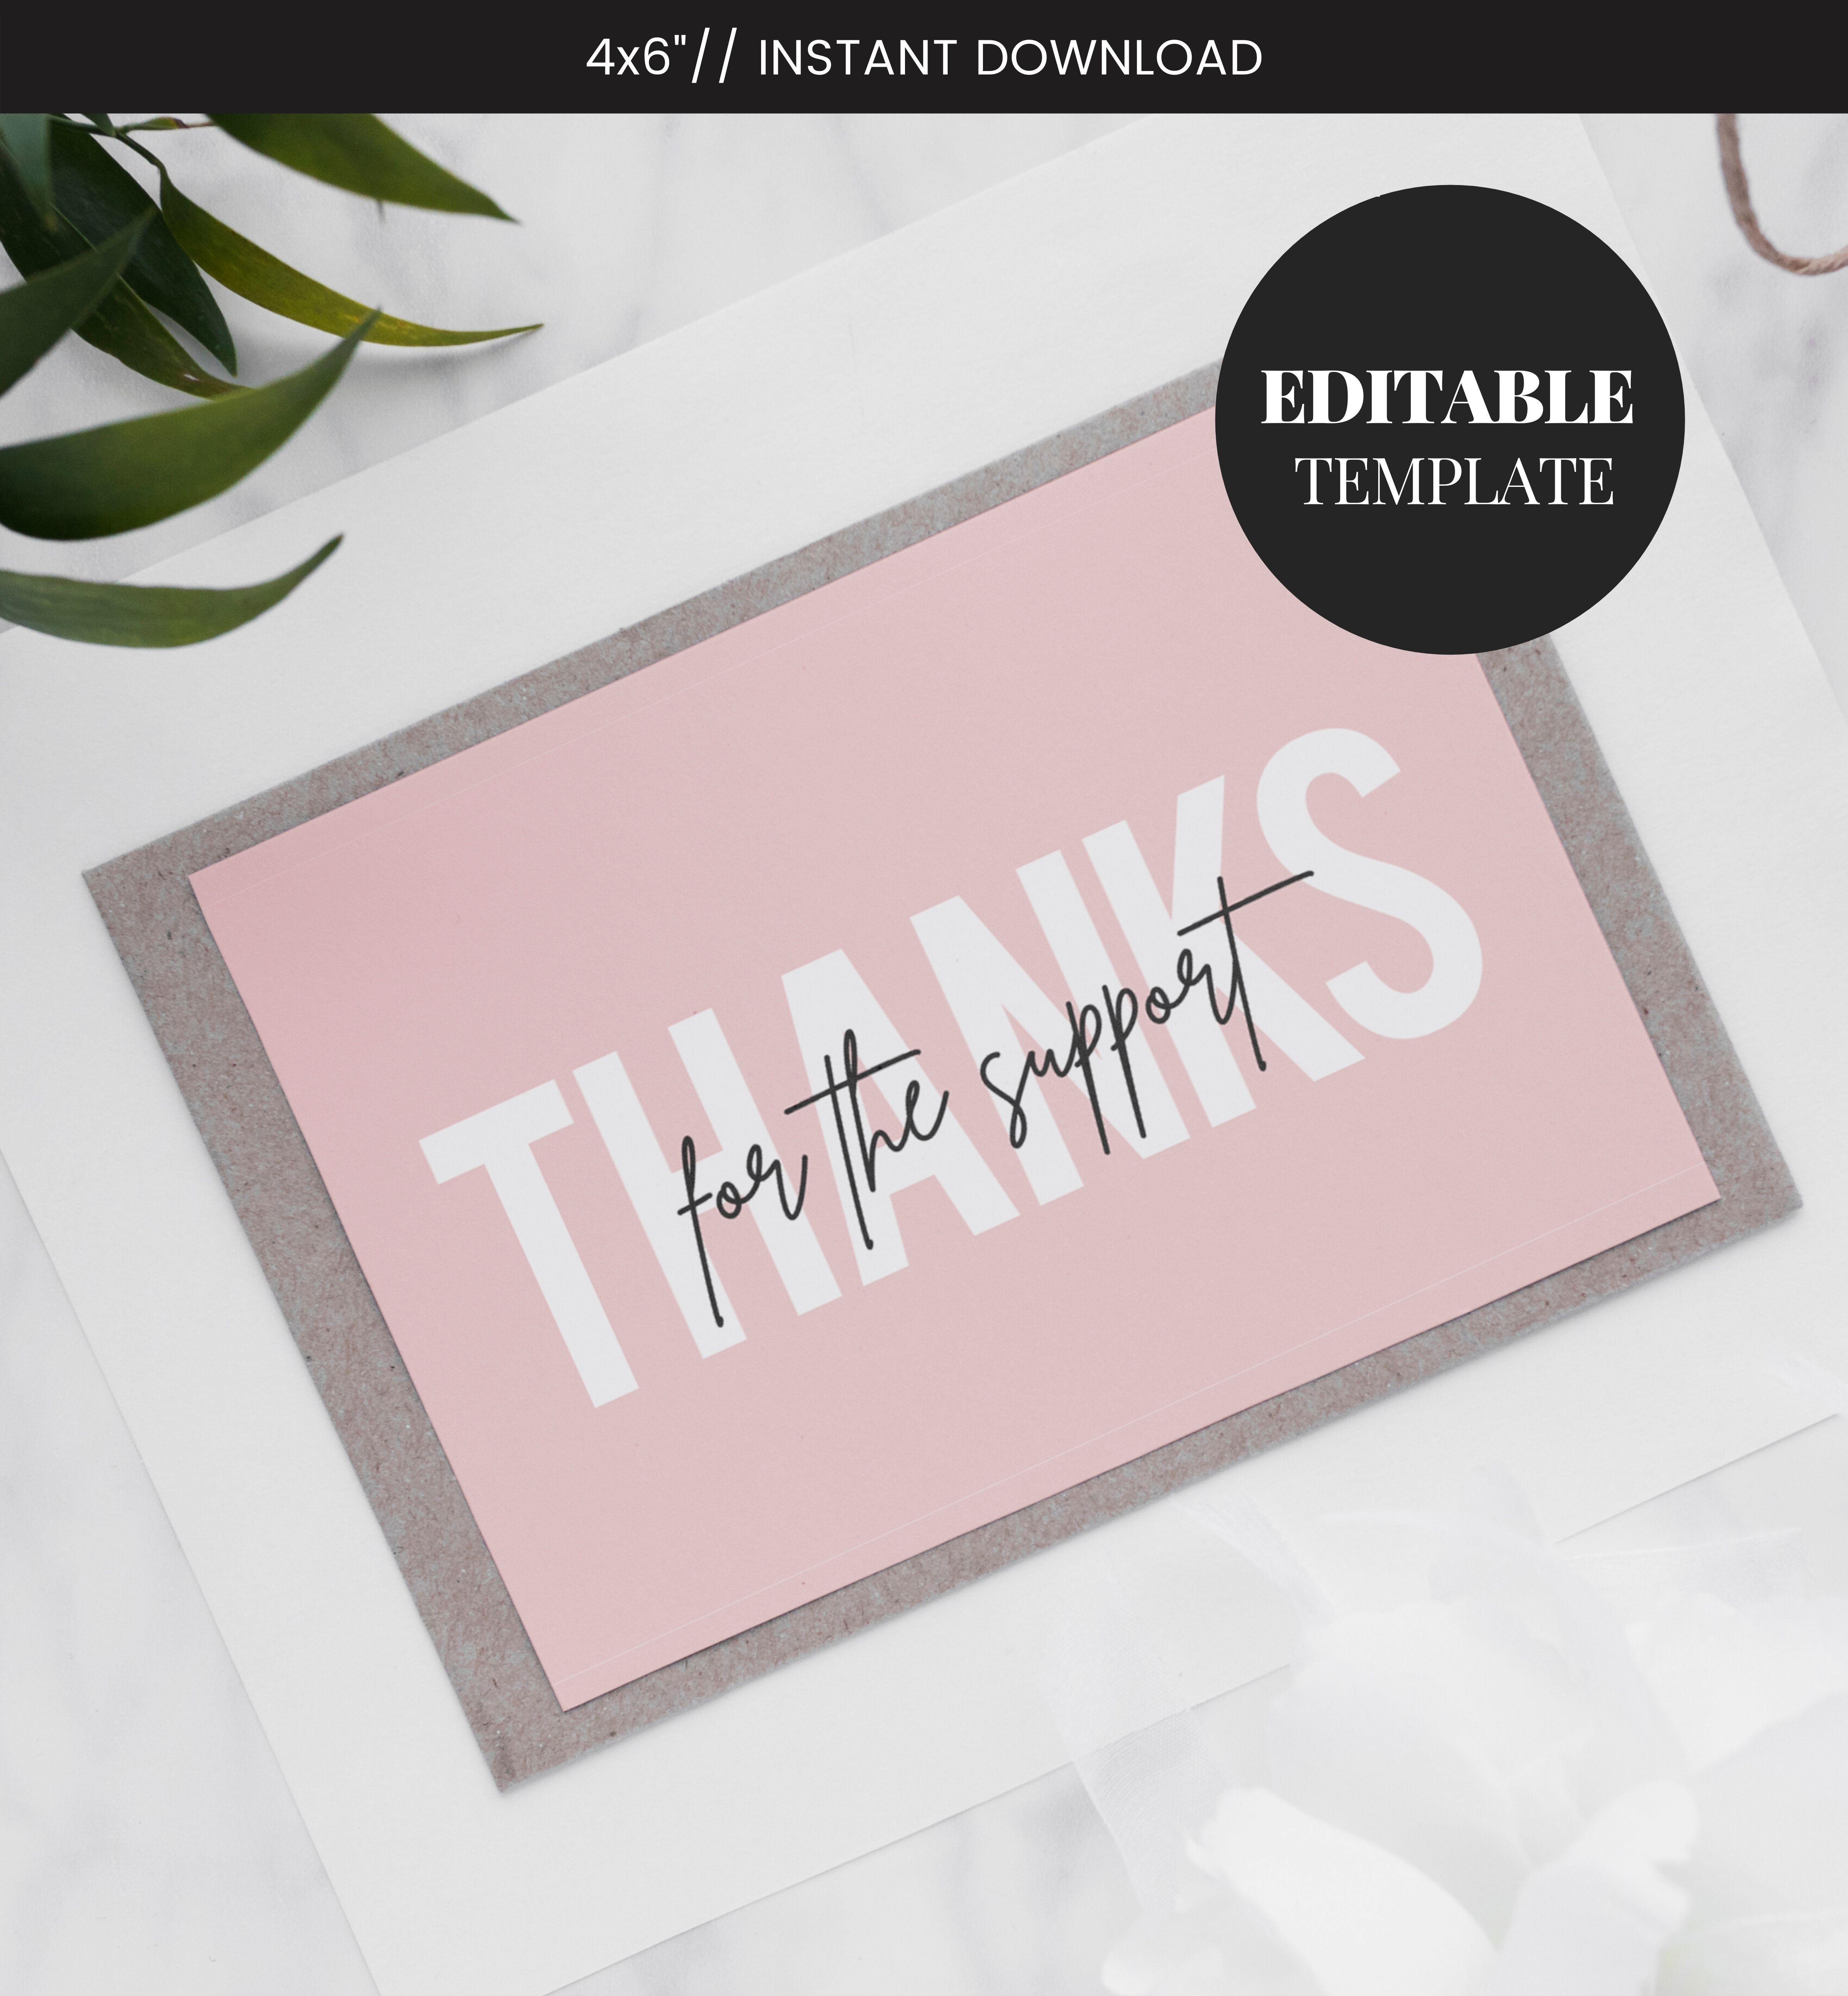 Editable Business Thank You Card Printable Blush Pink Thank You Thanks For Your Purchase Card Seller Thank You Customer Thank You Business Thank You Cards Thank You